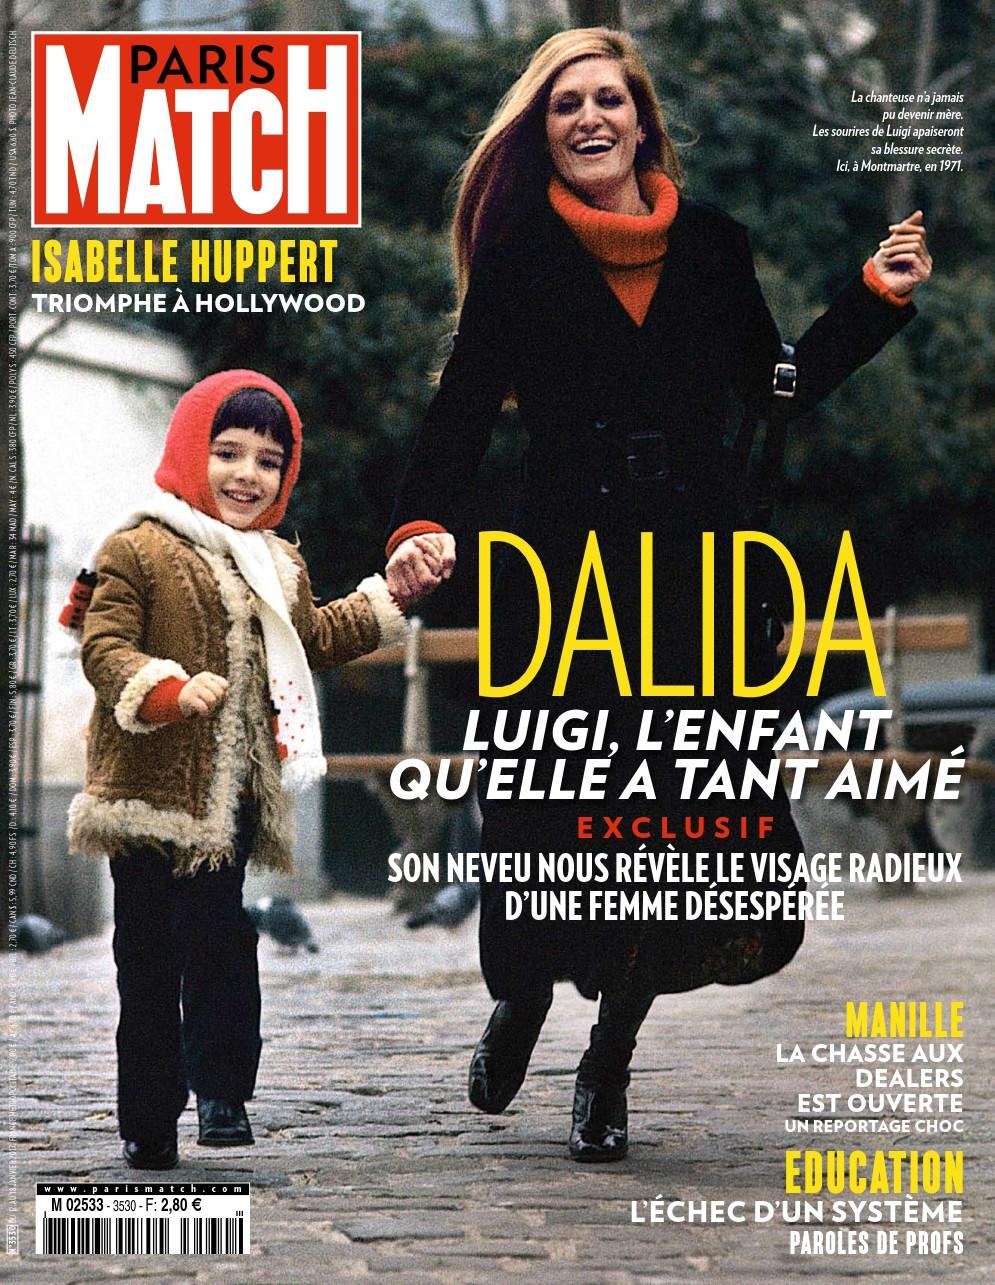 Paris Match N°3530 - 12 au 18 Janvier 2017